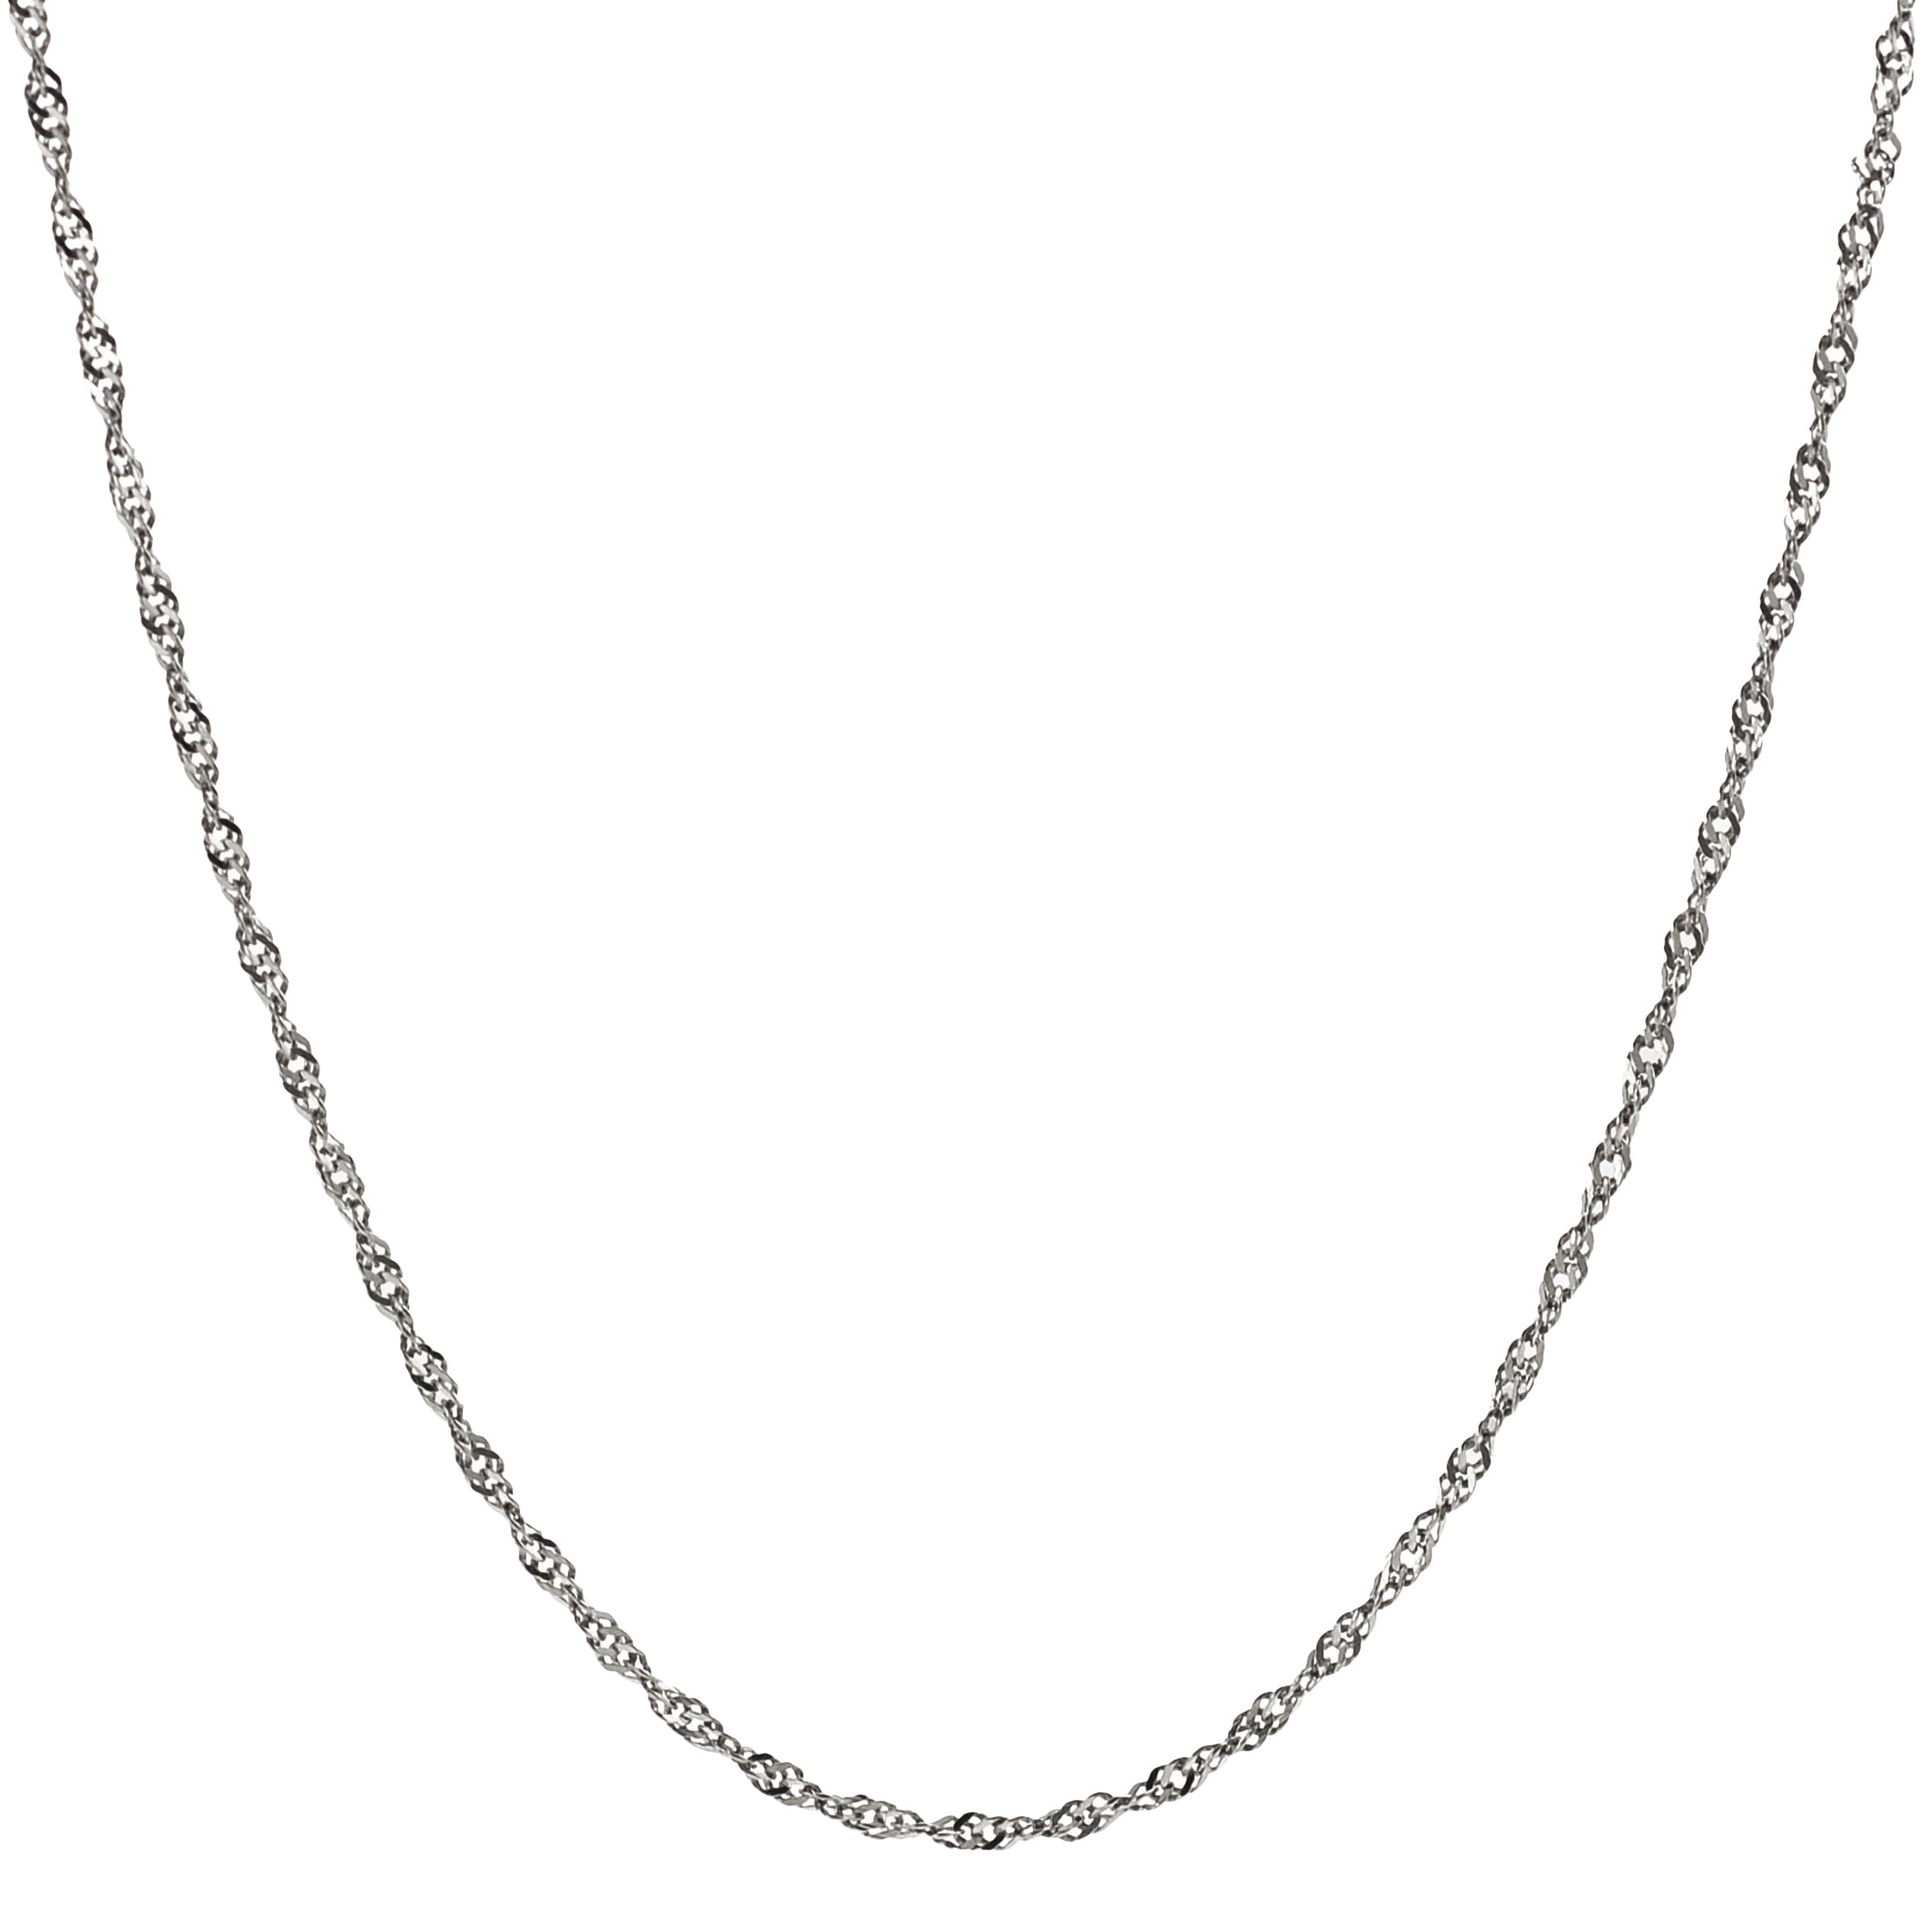 Journee Collection Stainless Steel Singapore Chain Necklace